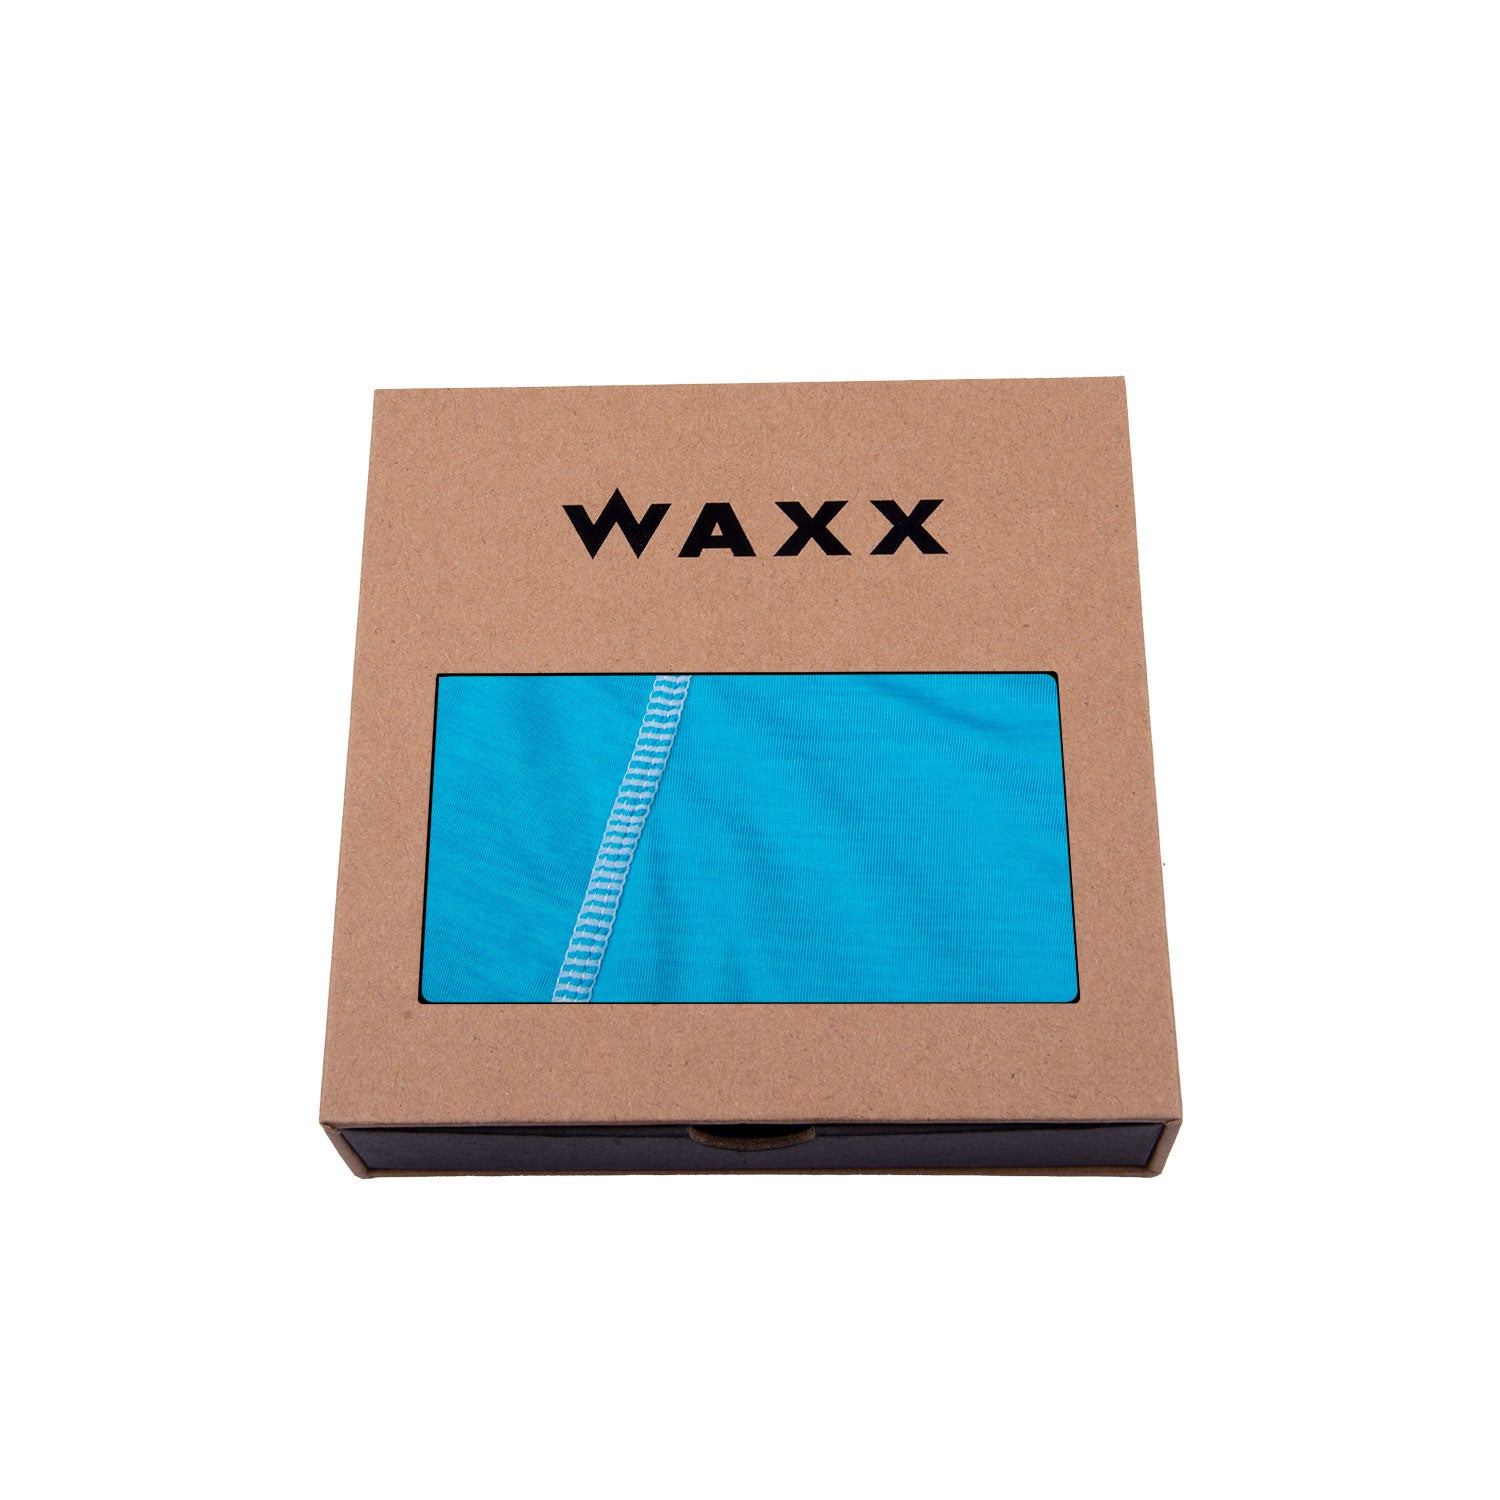 Waxx Men's Trunk Boxer Short Mint